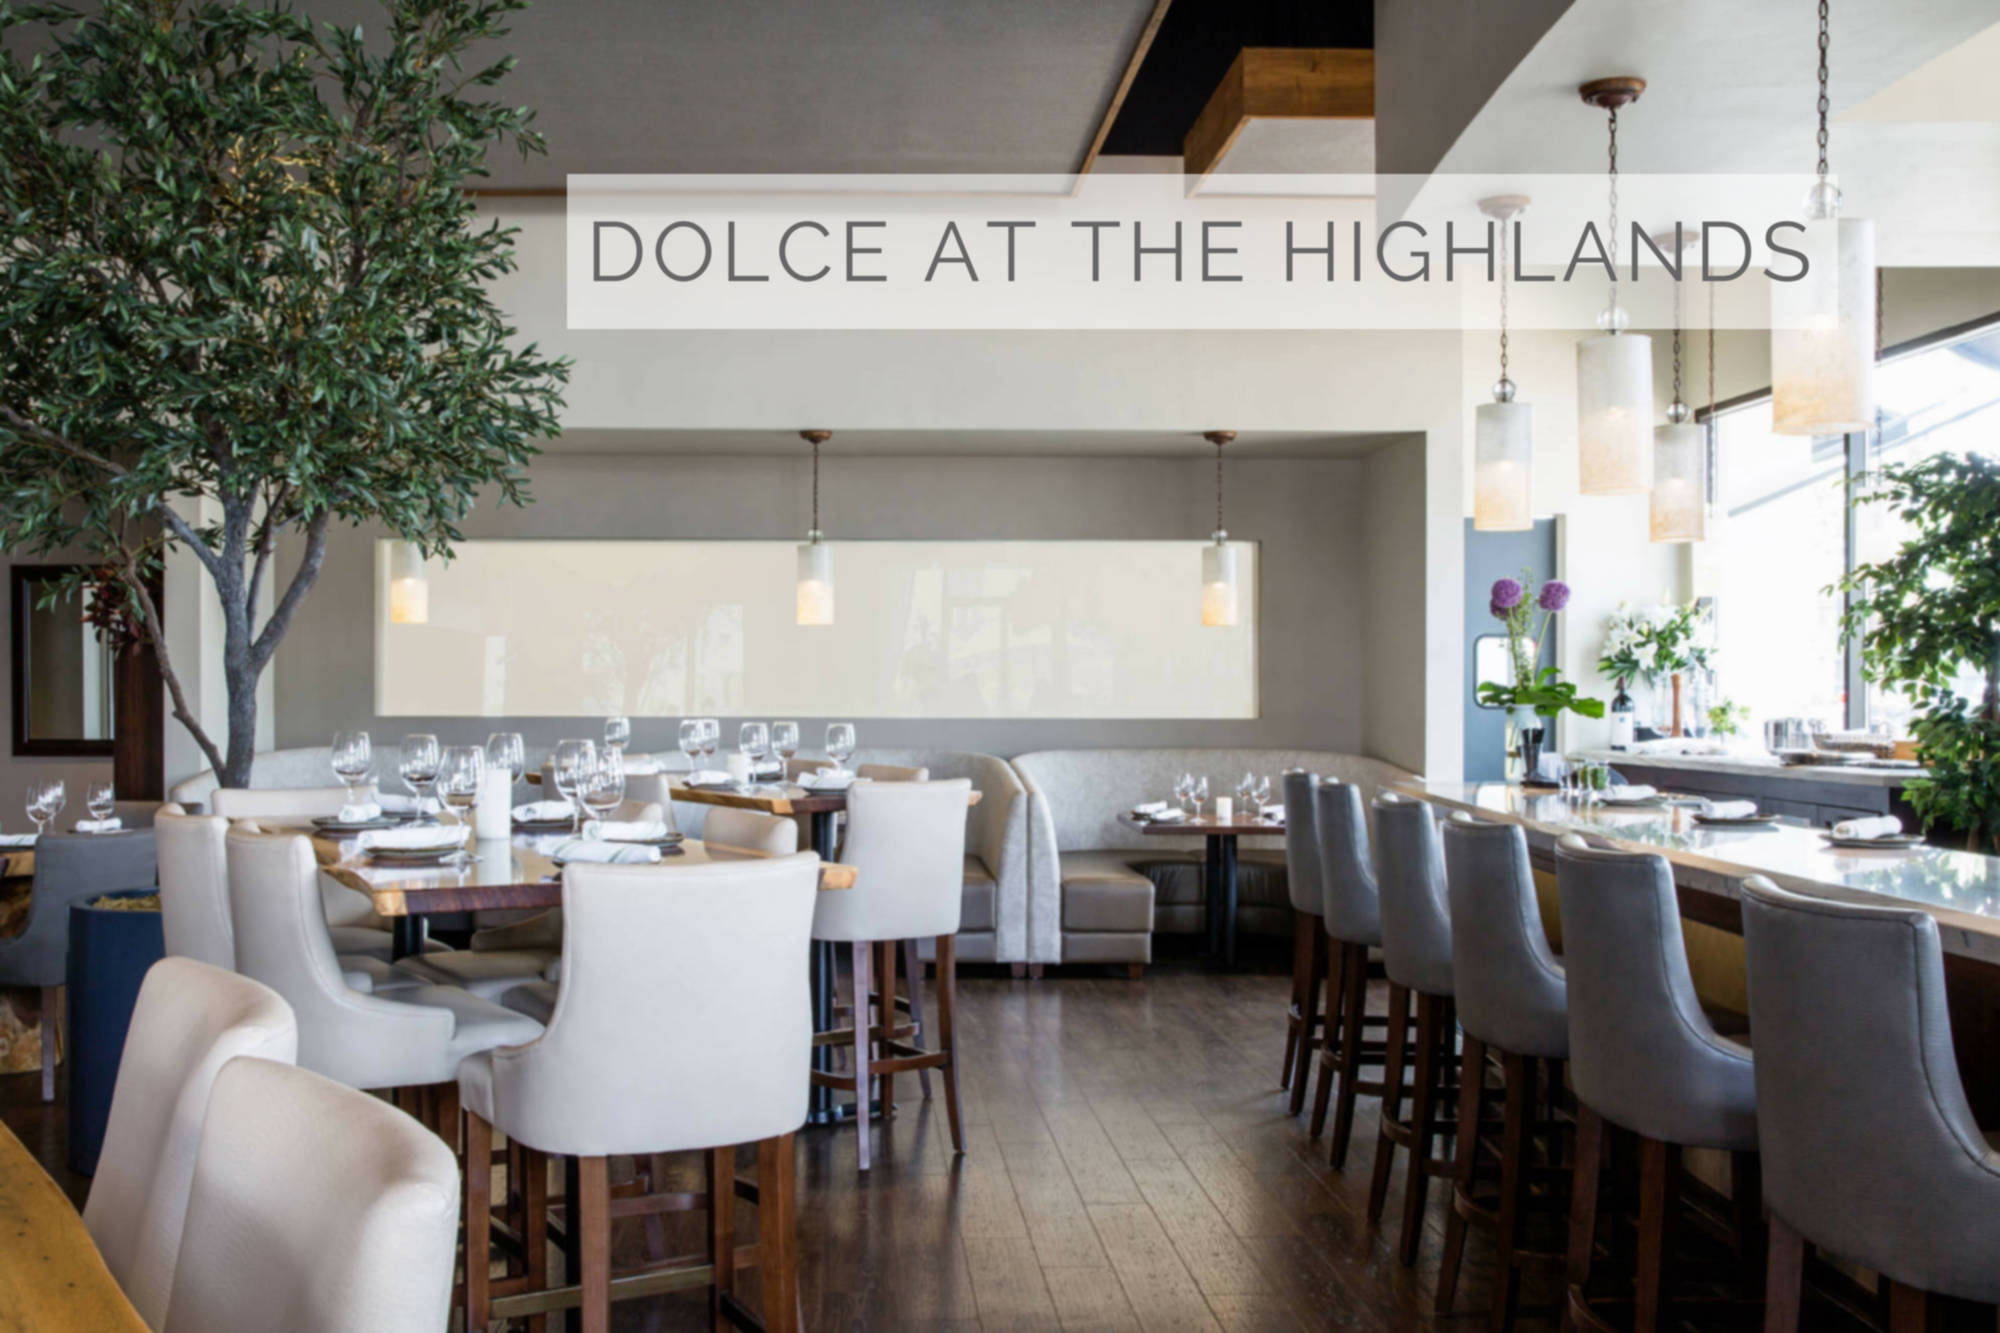 Dolce at the Highlands - - Interior Design San Diego